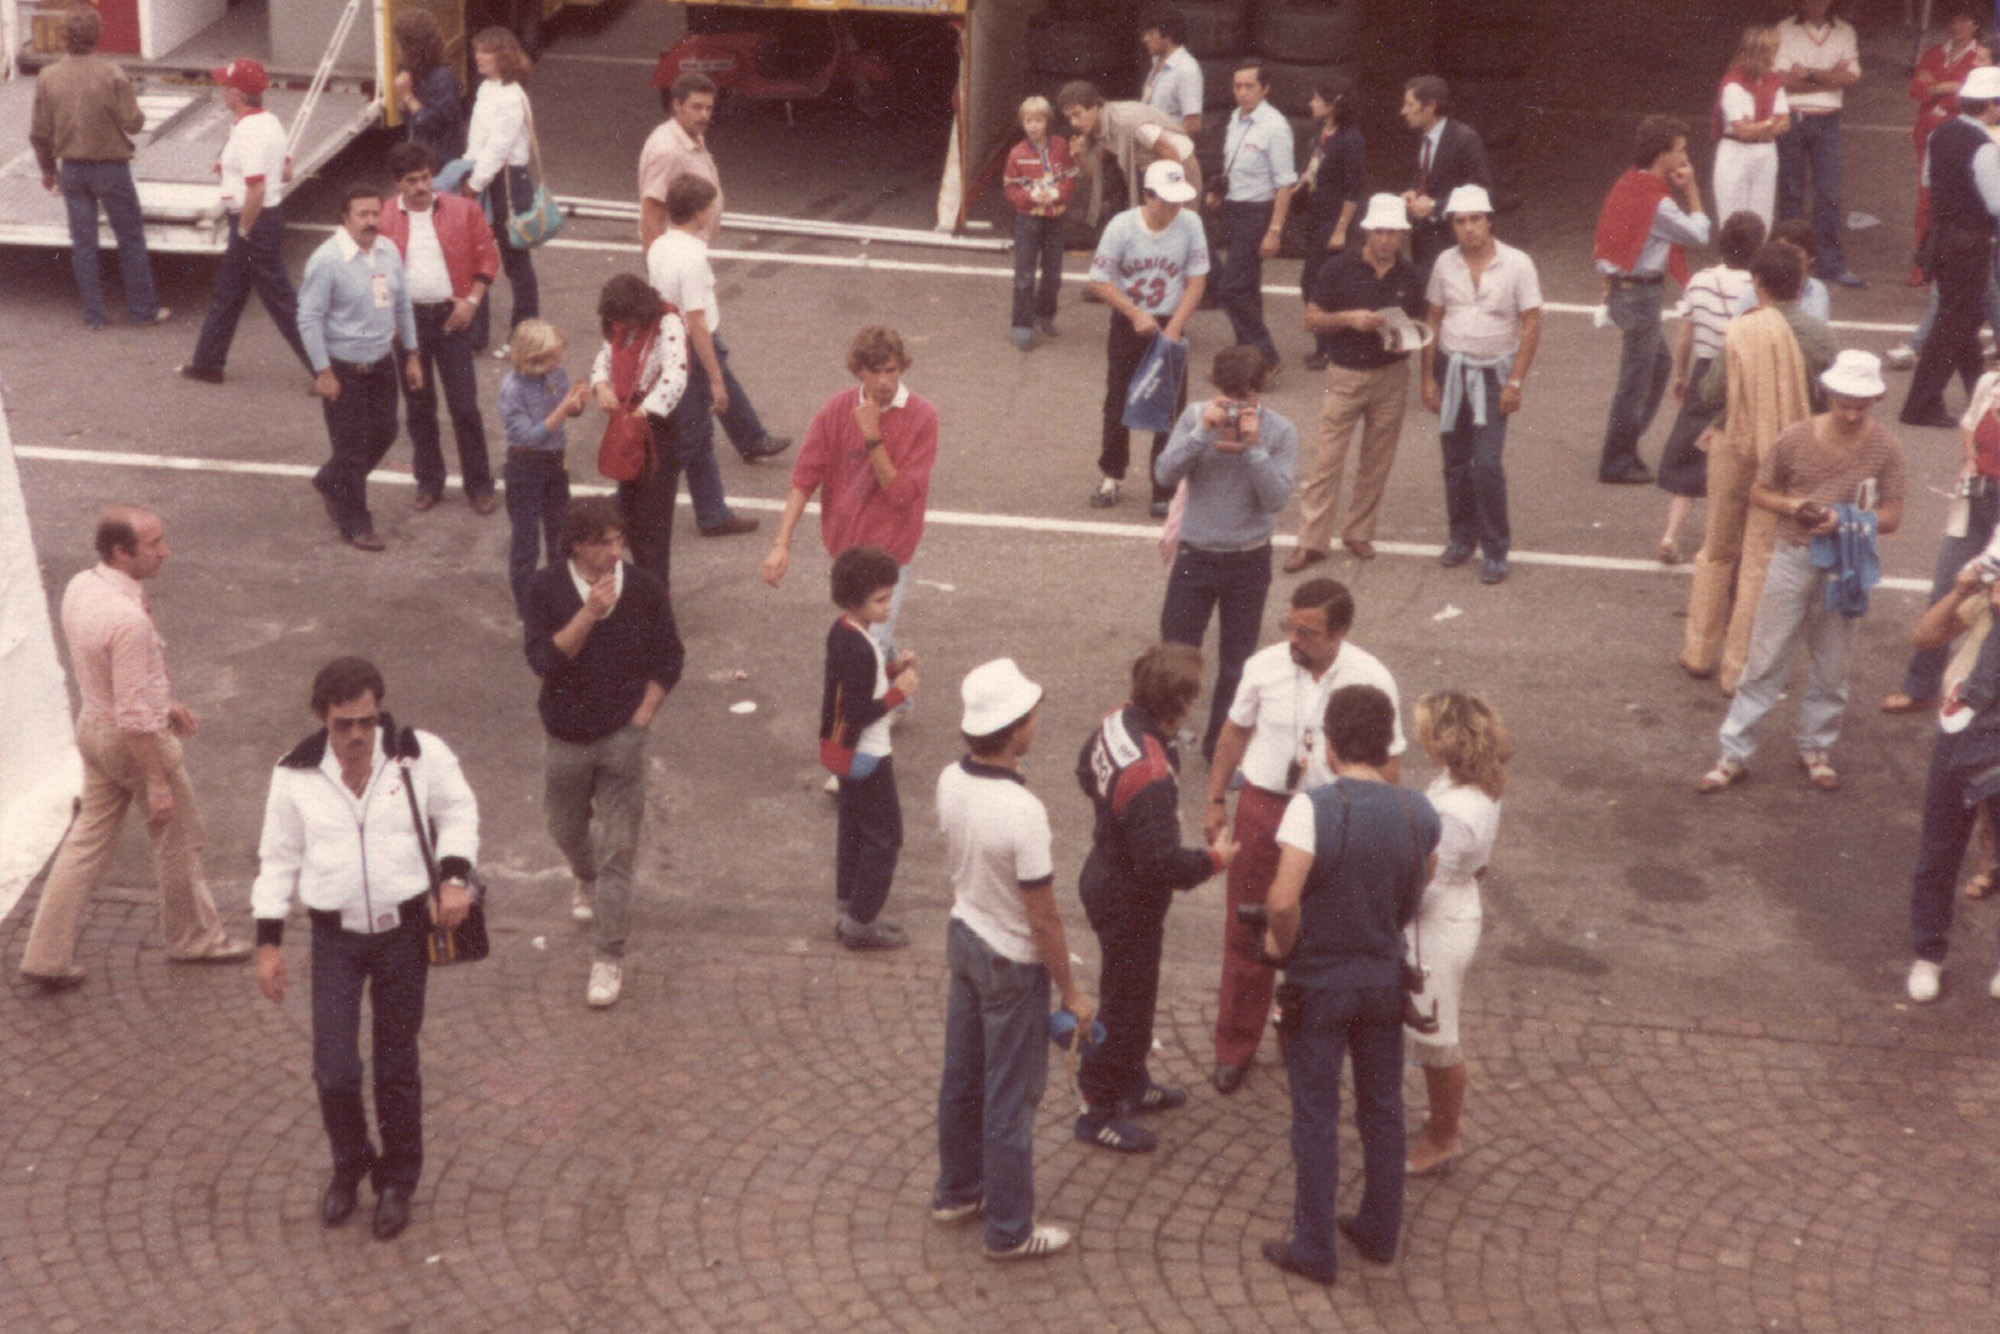 A crowd around Rene Arnoux in the paddock at the 1981 Italian Grand Prix